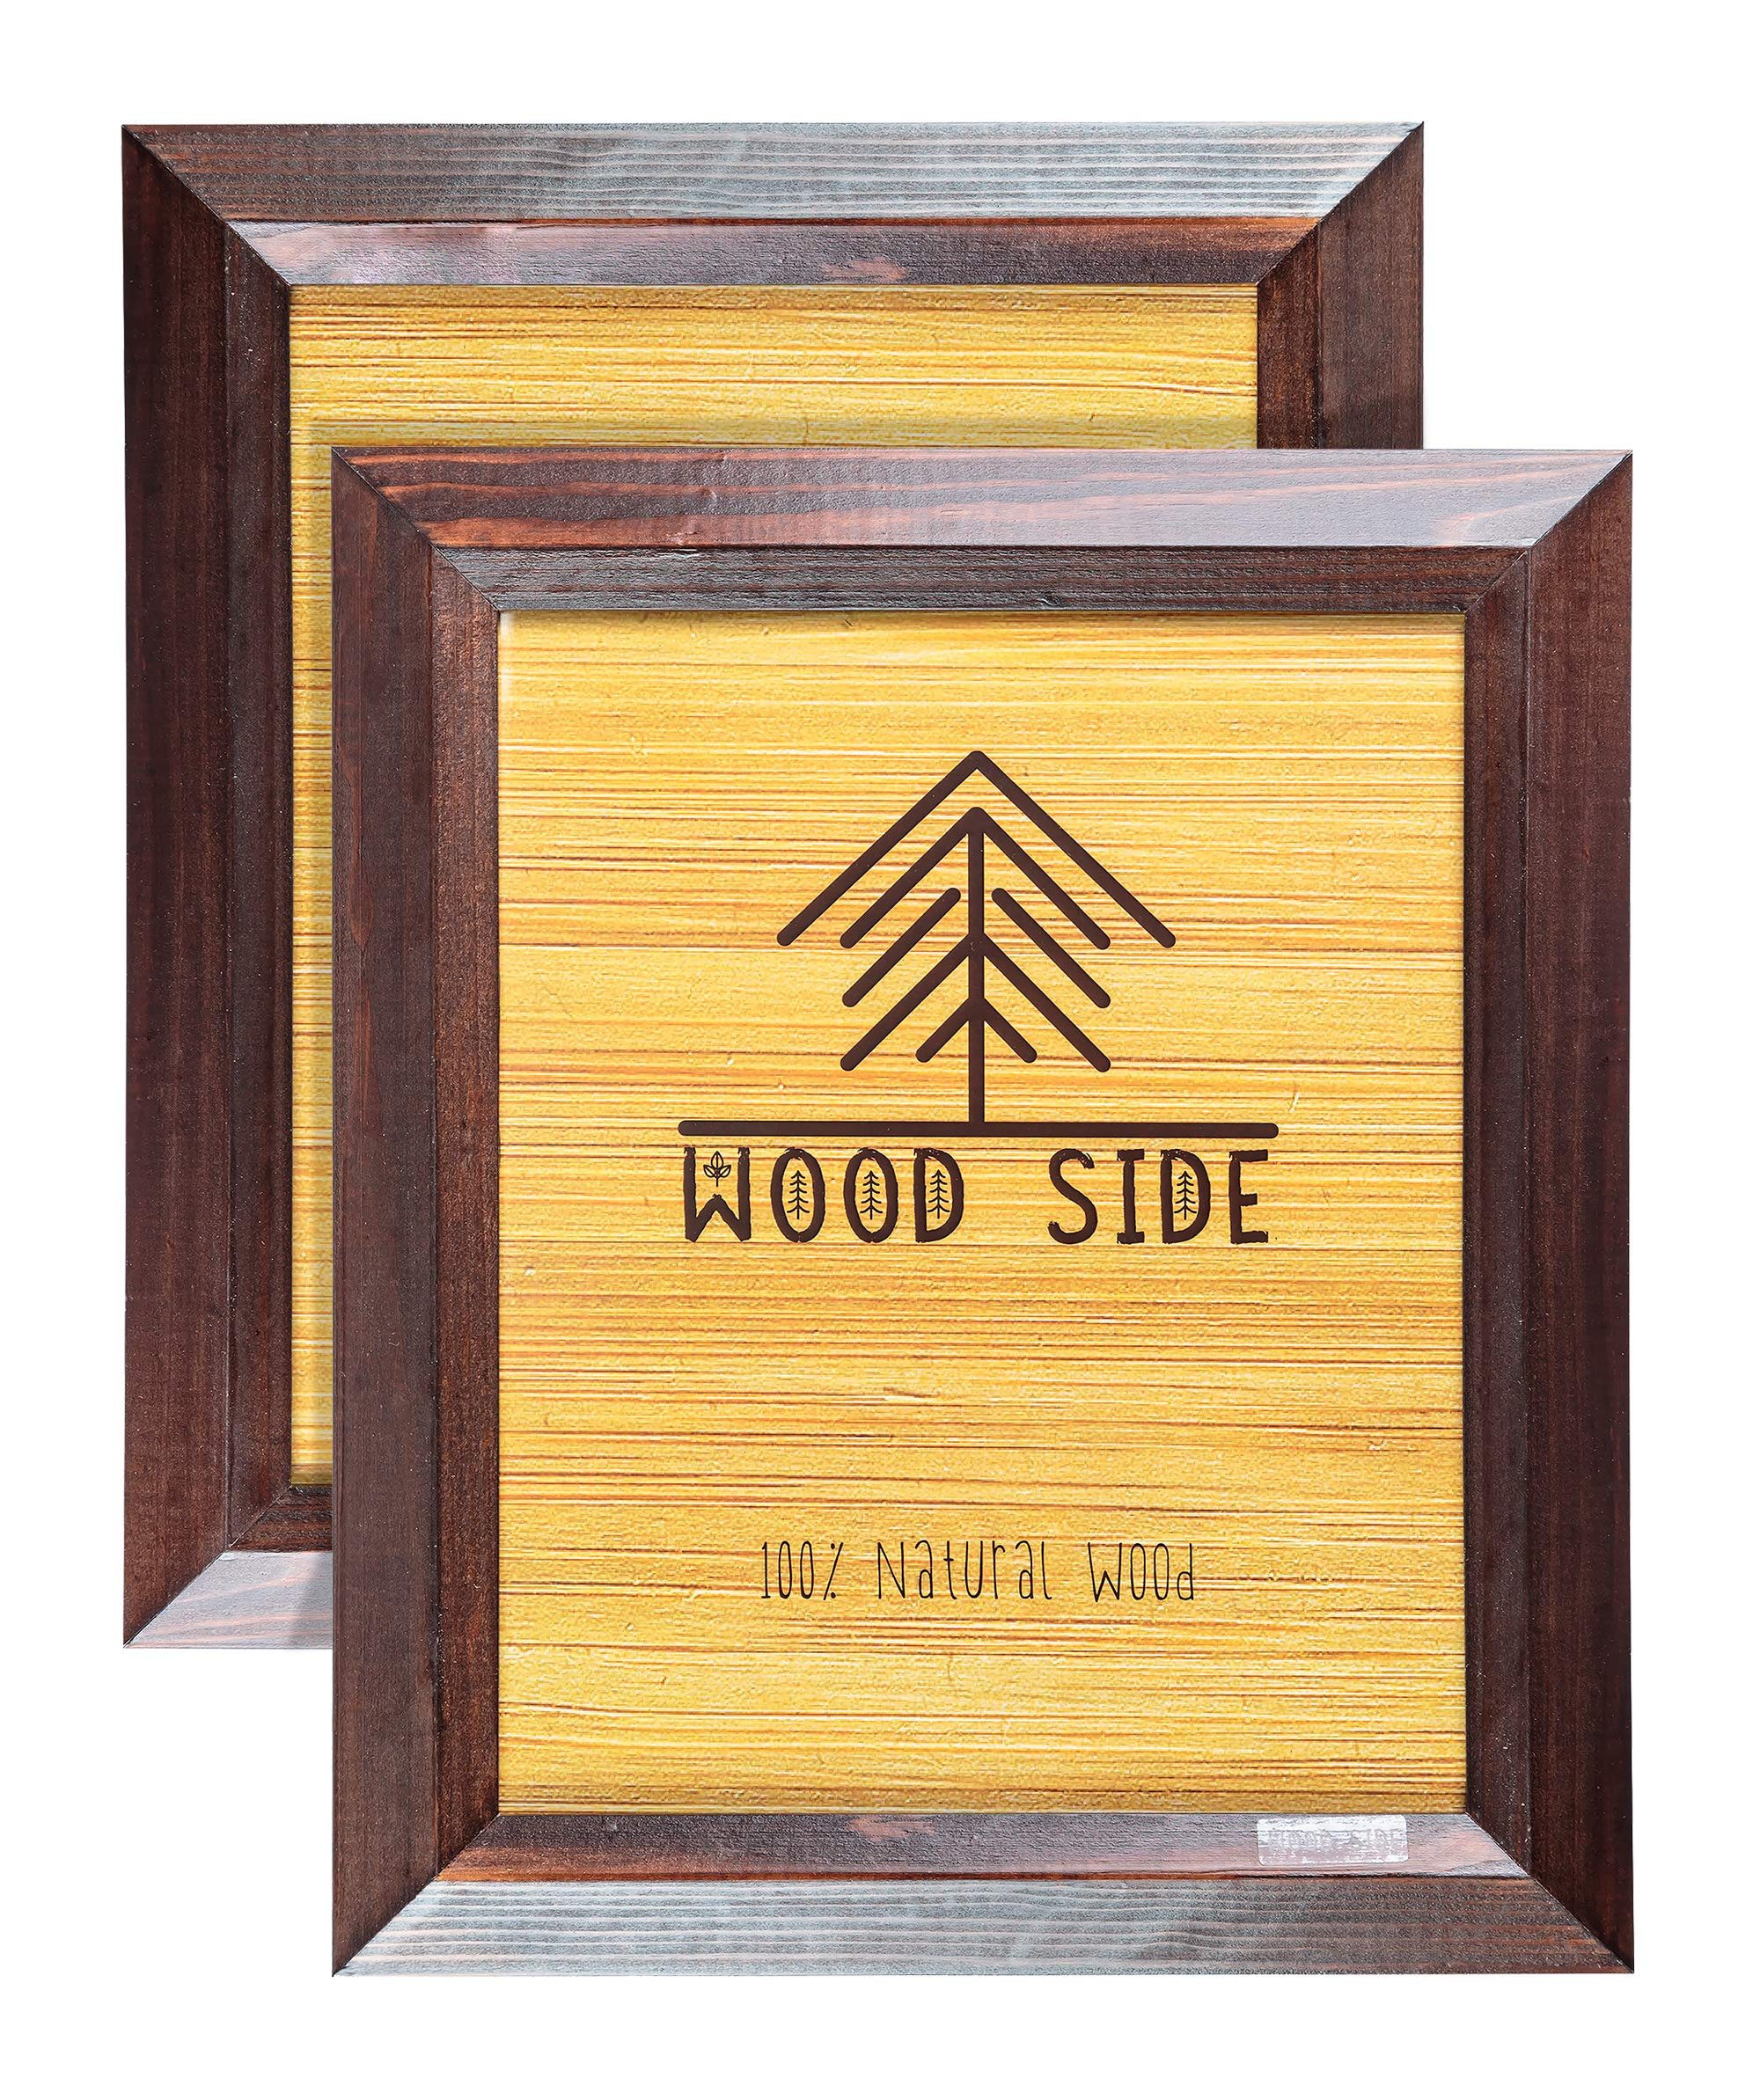 4x6 Wooden Picture Frames Brown - Pack of 2 - Rustic Design - Made of Solid Wood Finish Beveled Profile with Real Glass for Wall Mounting and Tabletop Photo Frame